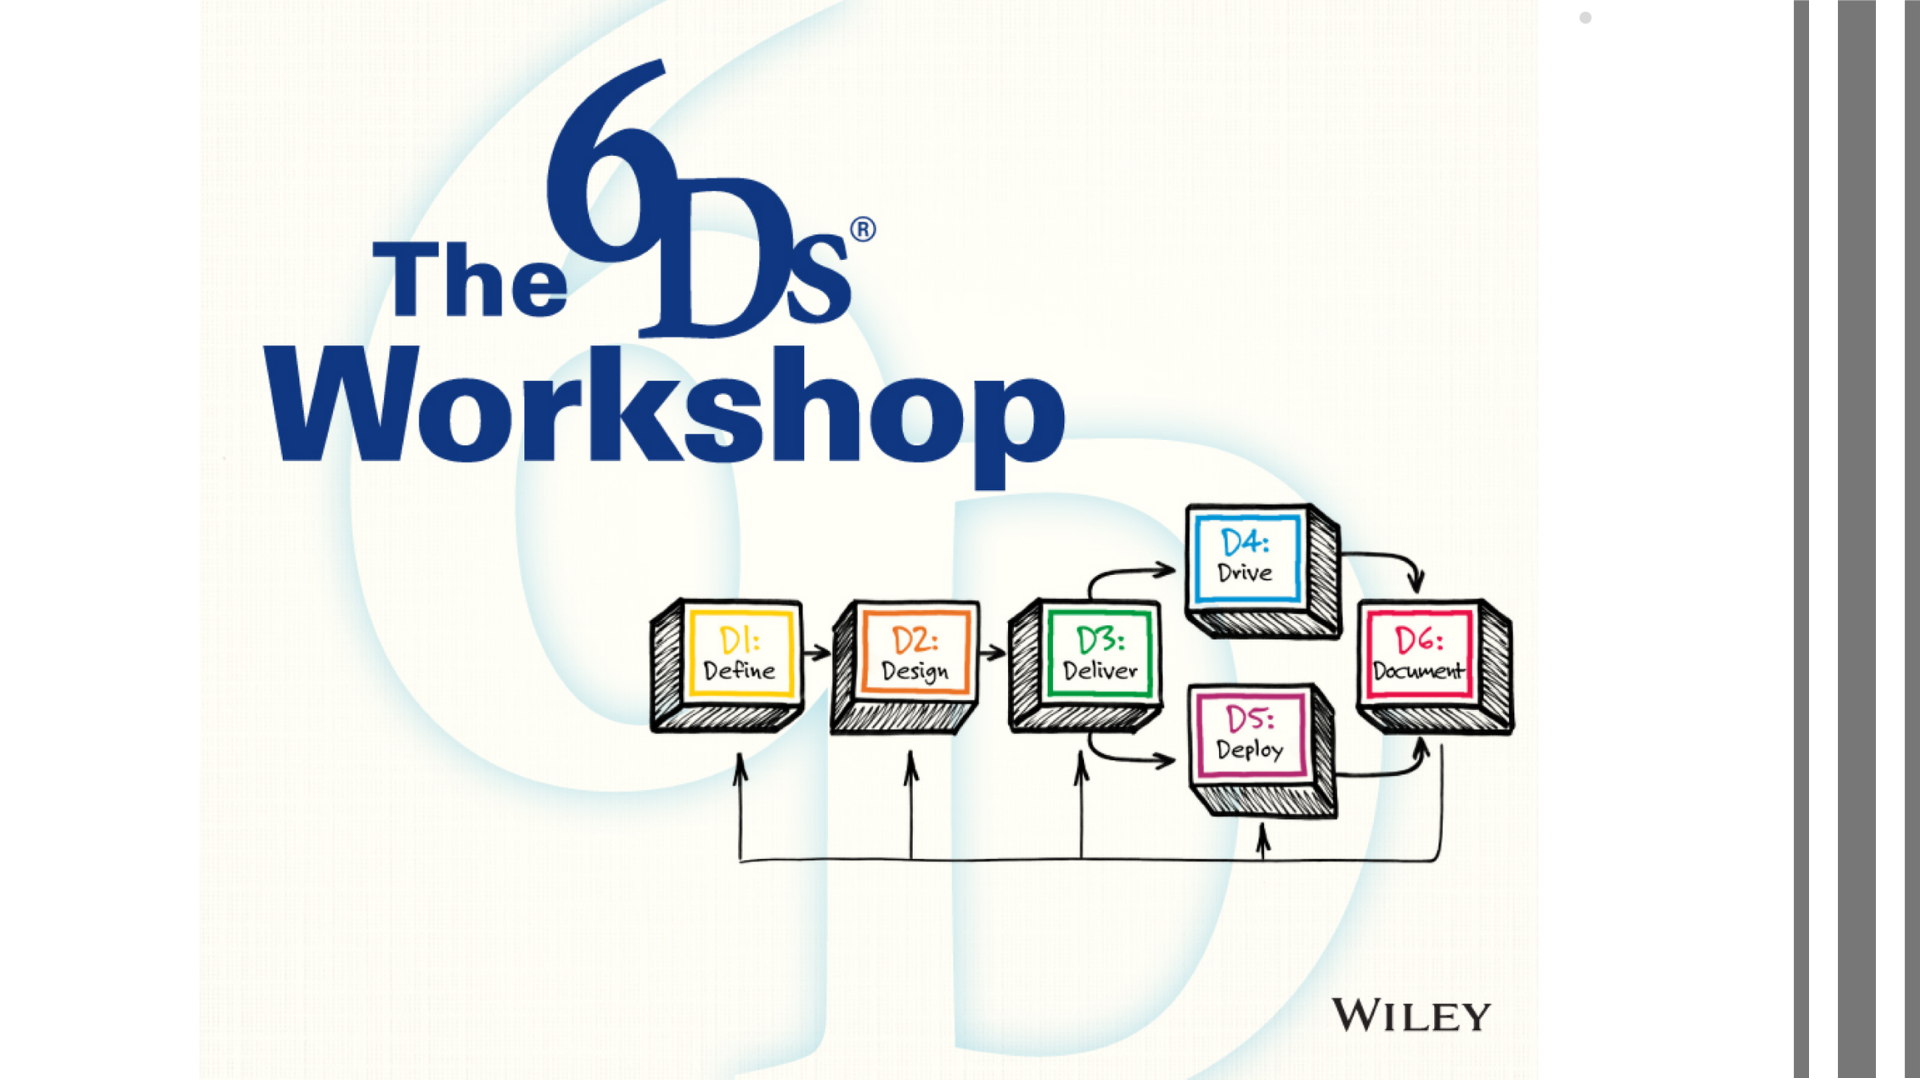 The 6Ds Online Certificate of Learning